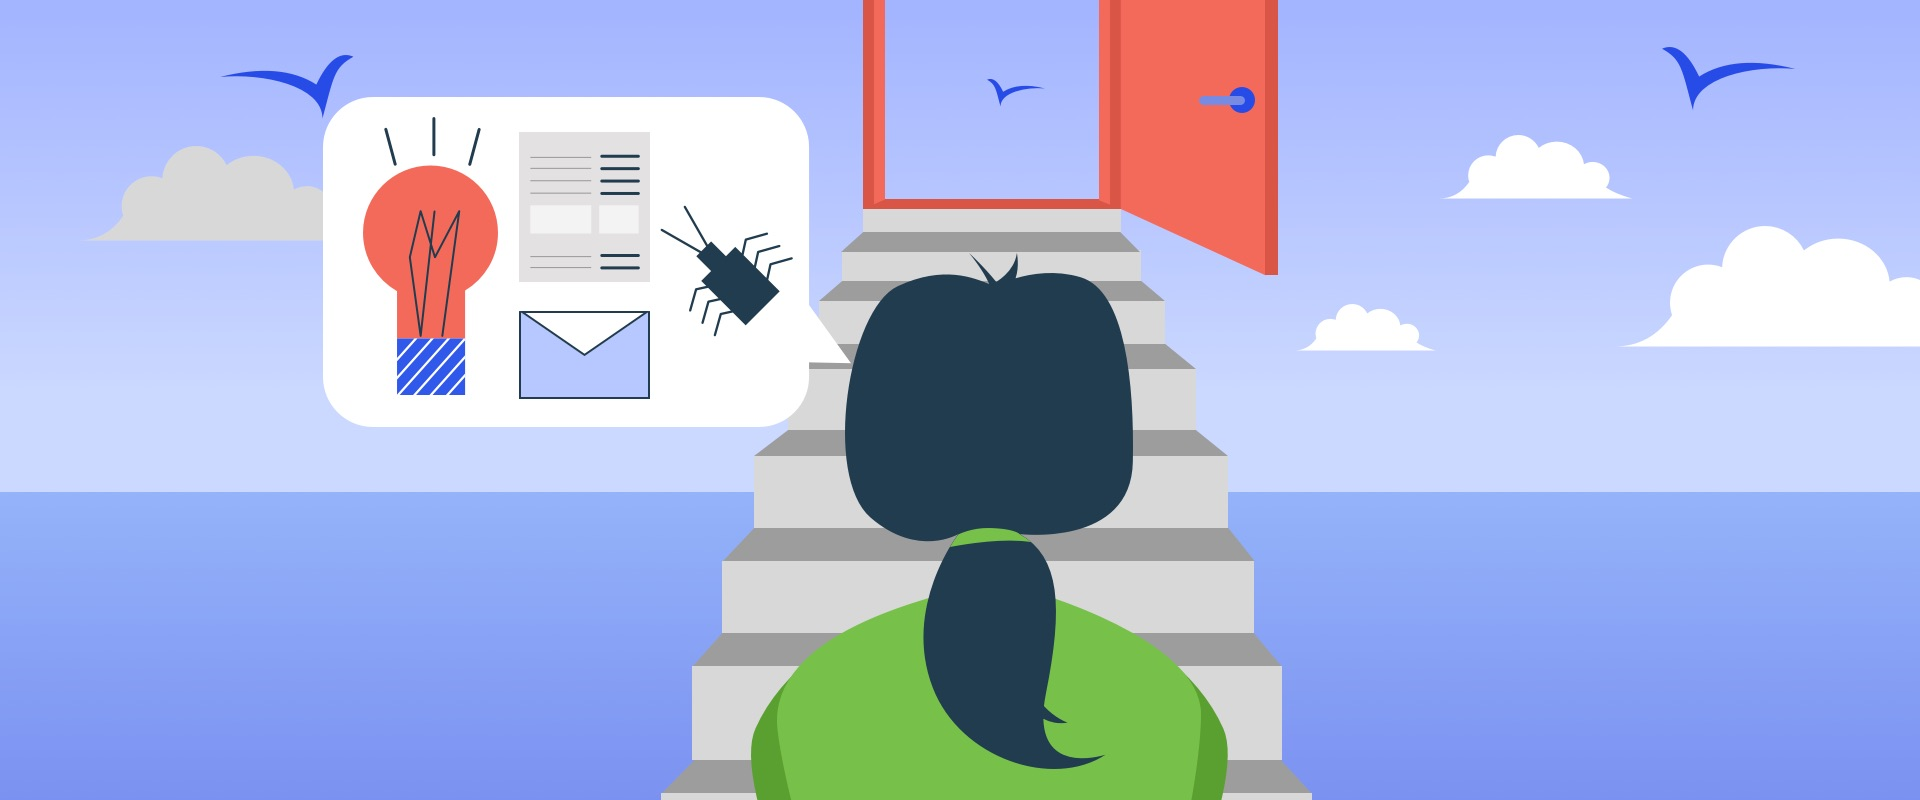 Illustration of a person walking through the door of options available after doing usability testing.